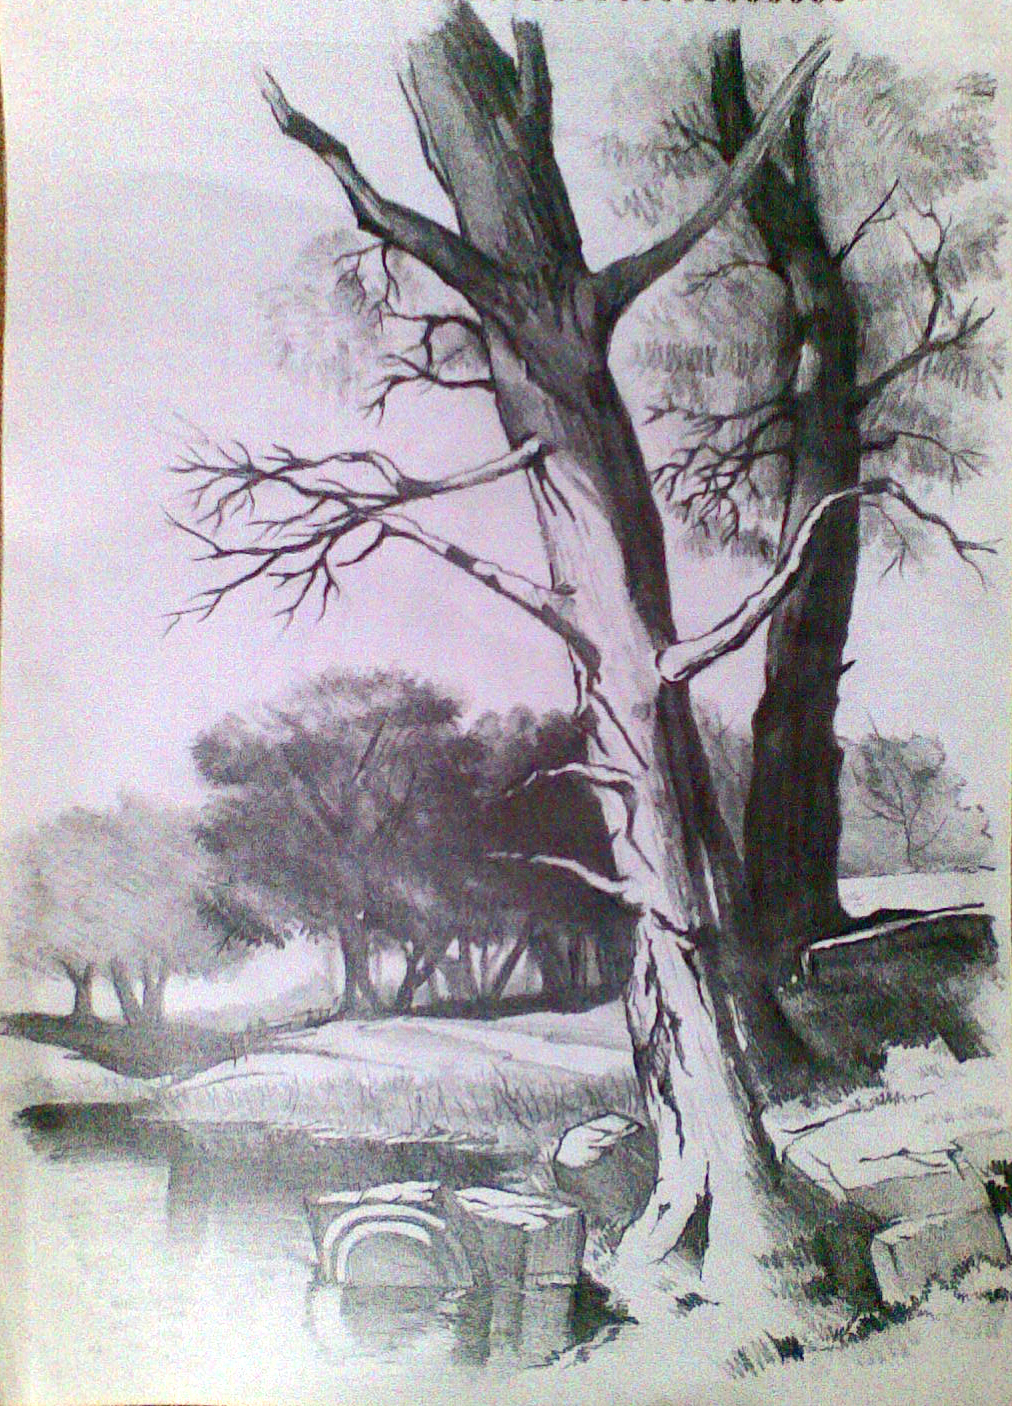 pencil scenery sketch drawing landscape nature sketches realistic 3d scene getdrawings paintingvalley